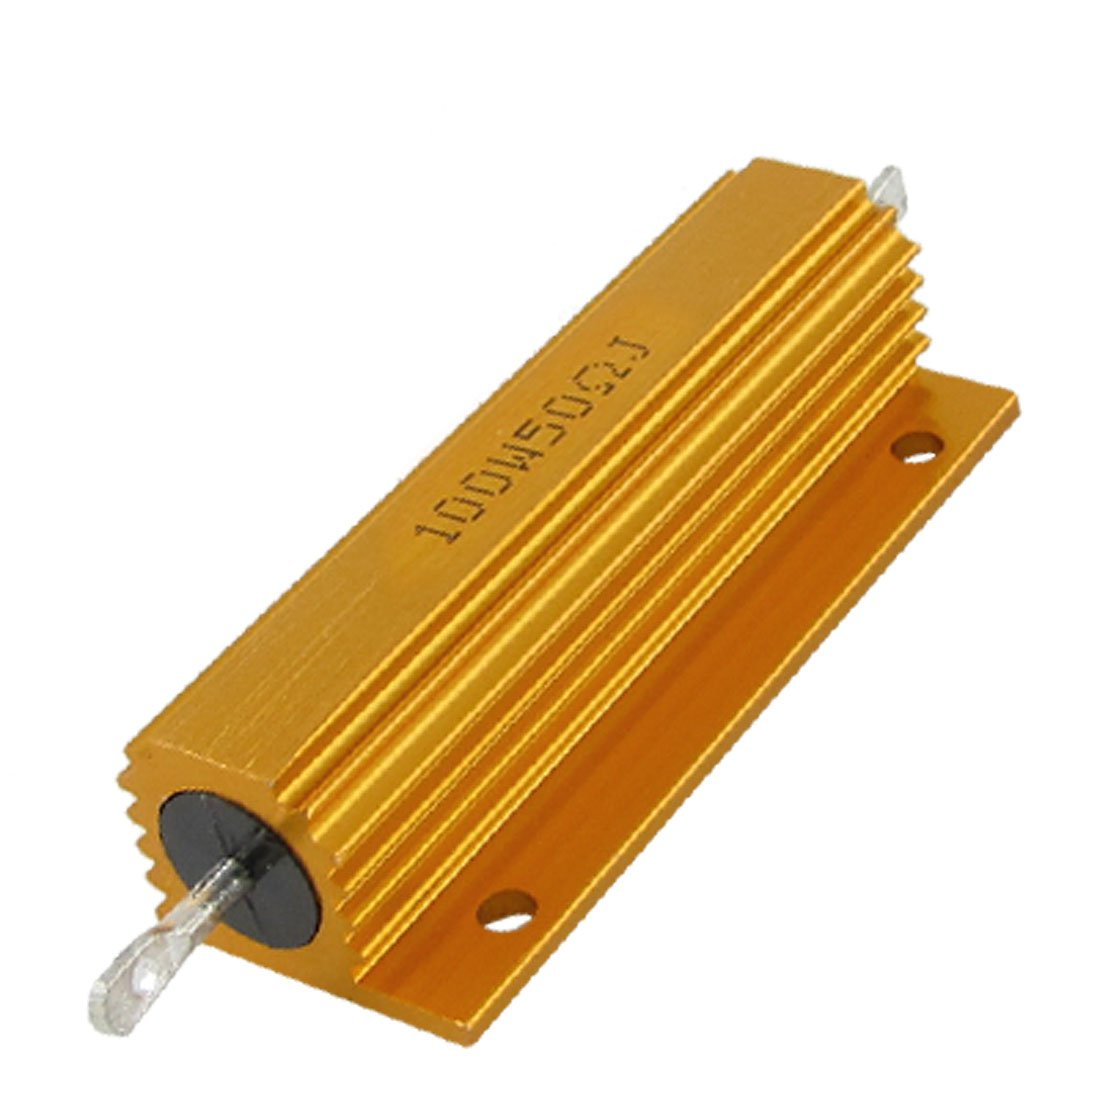 uxcell excellence a11111000ux0117 5% 100W 50 Aluminum Ohm R Clad Omaha Mall Resistance